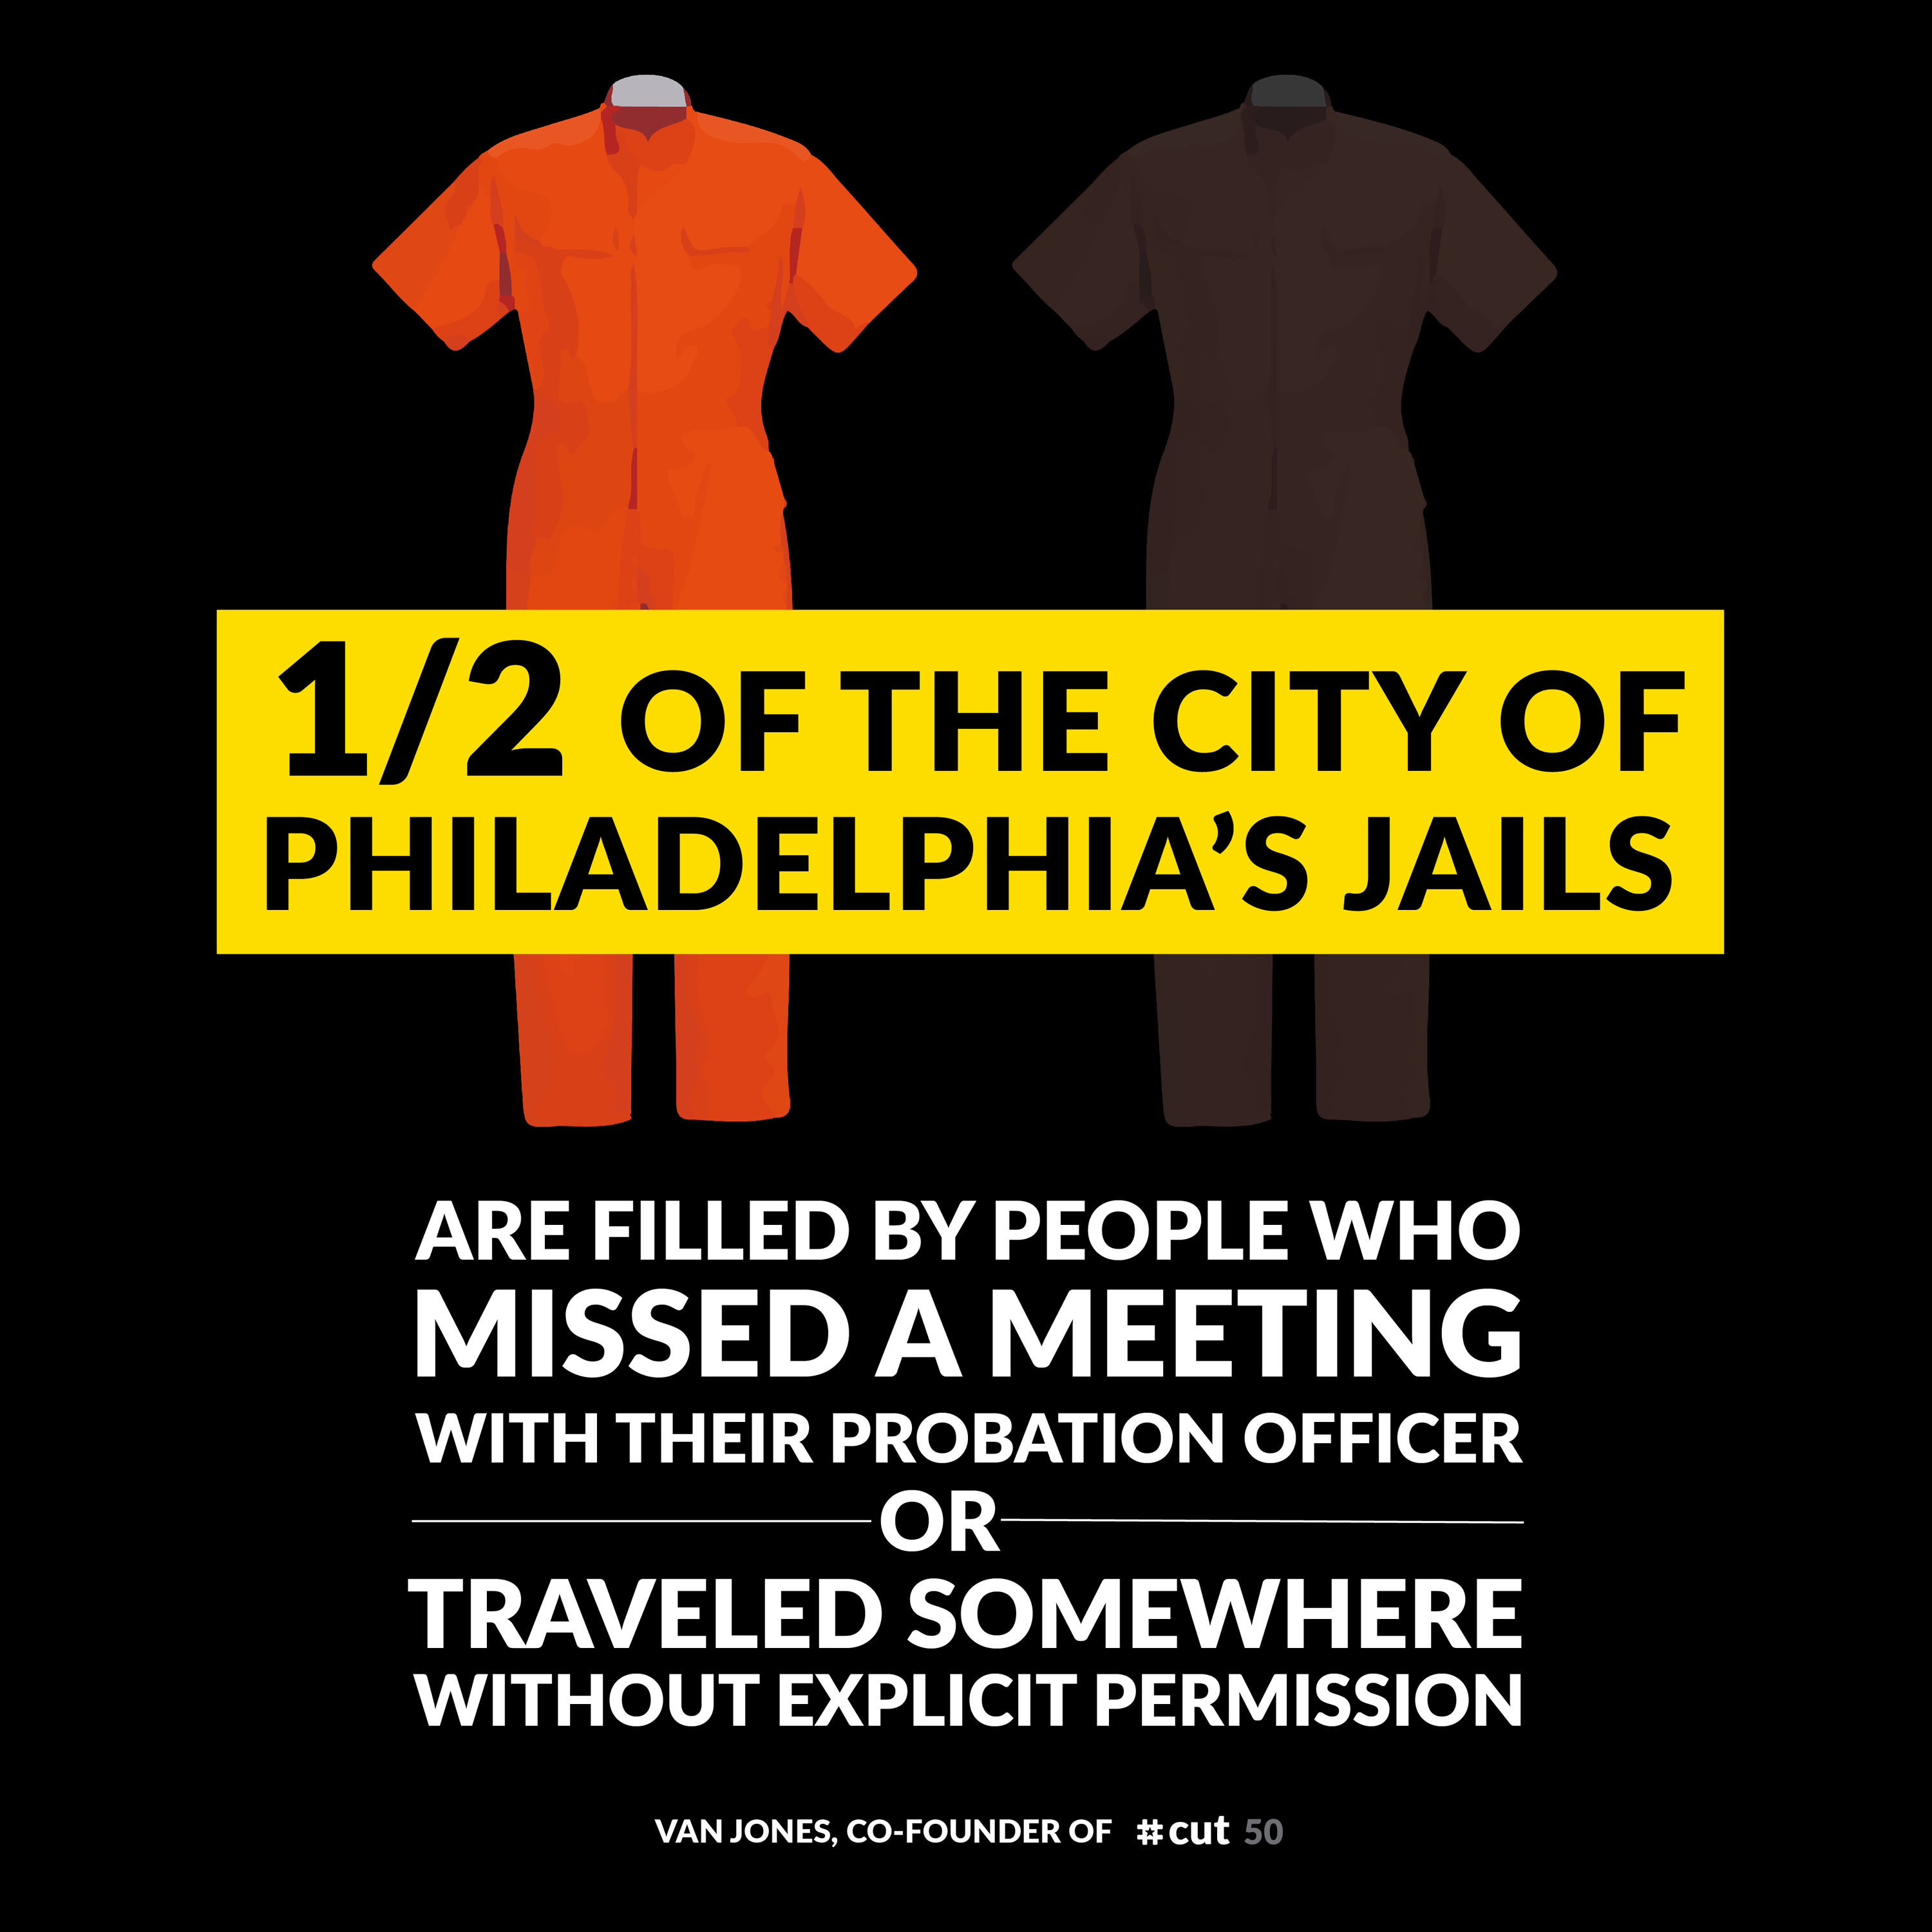 Half of Philly Jails